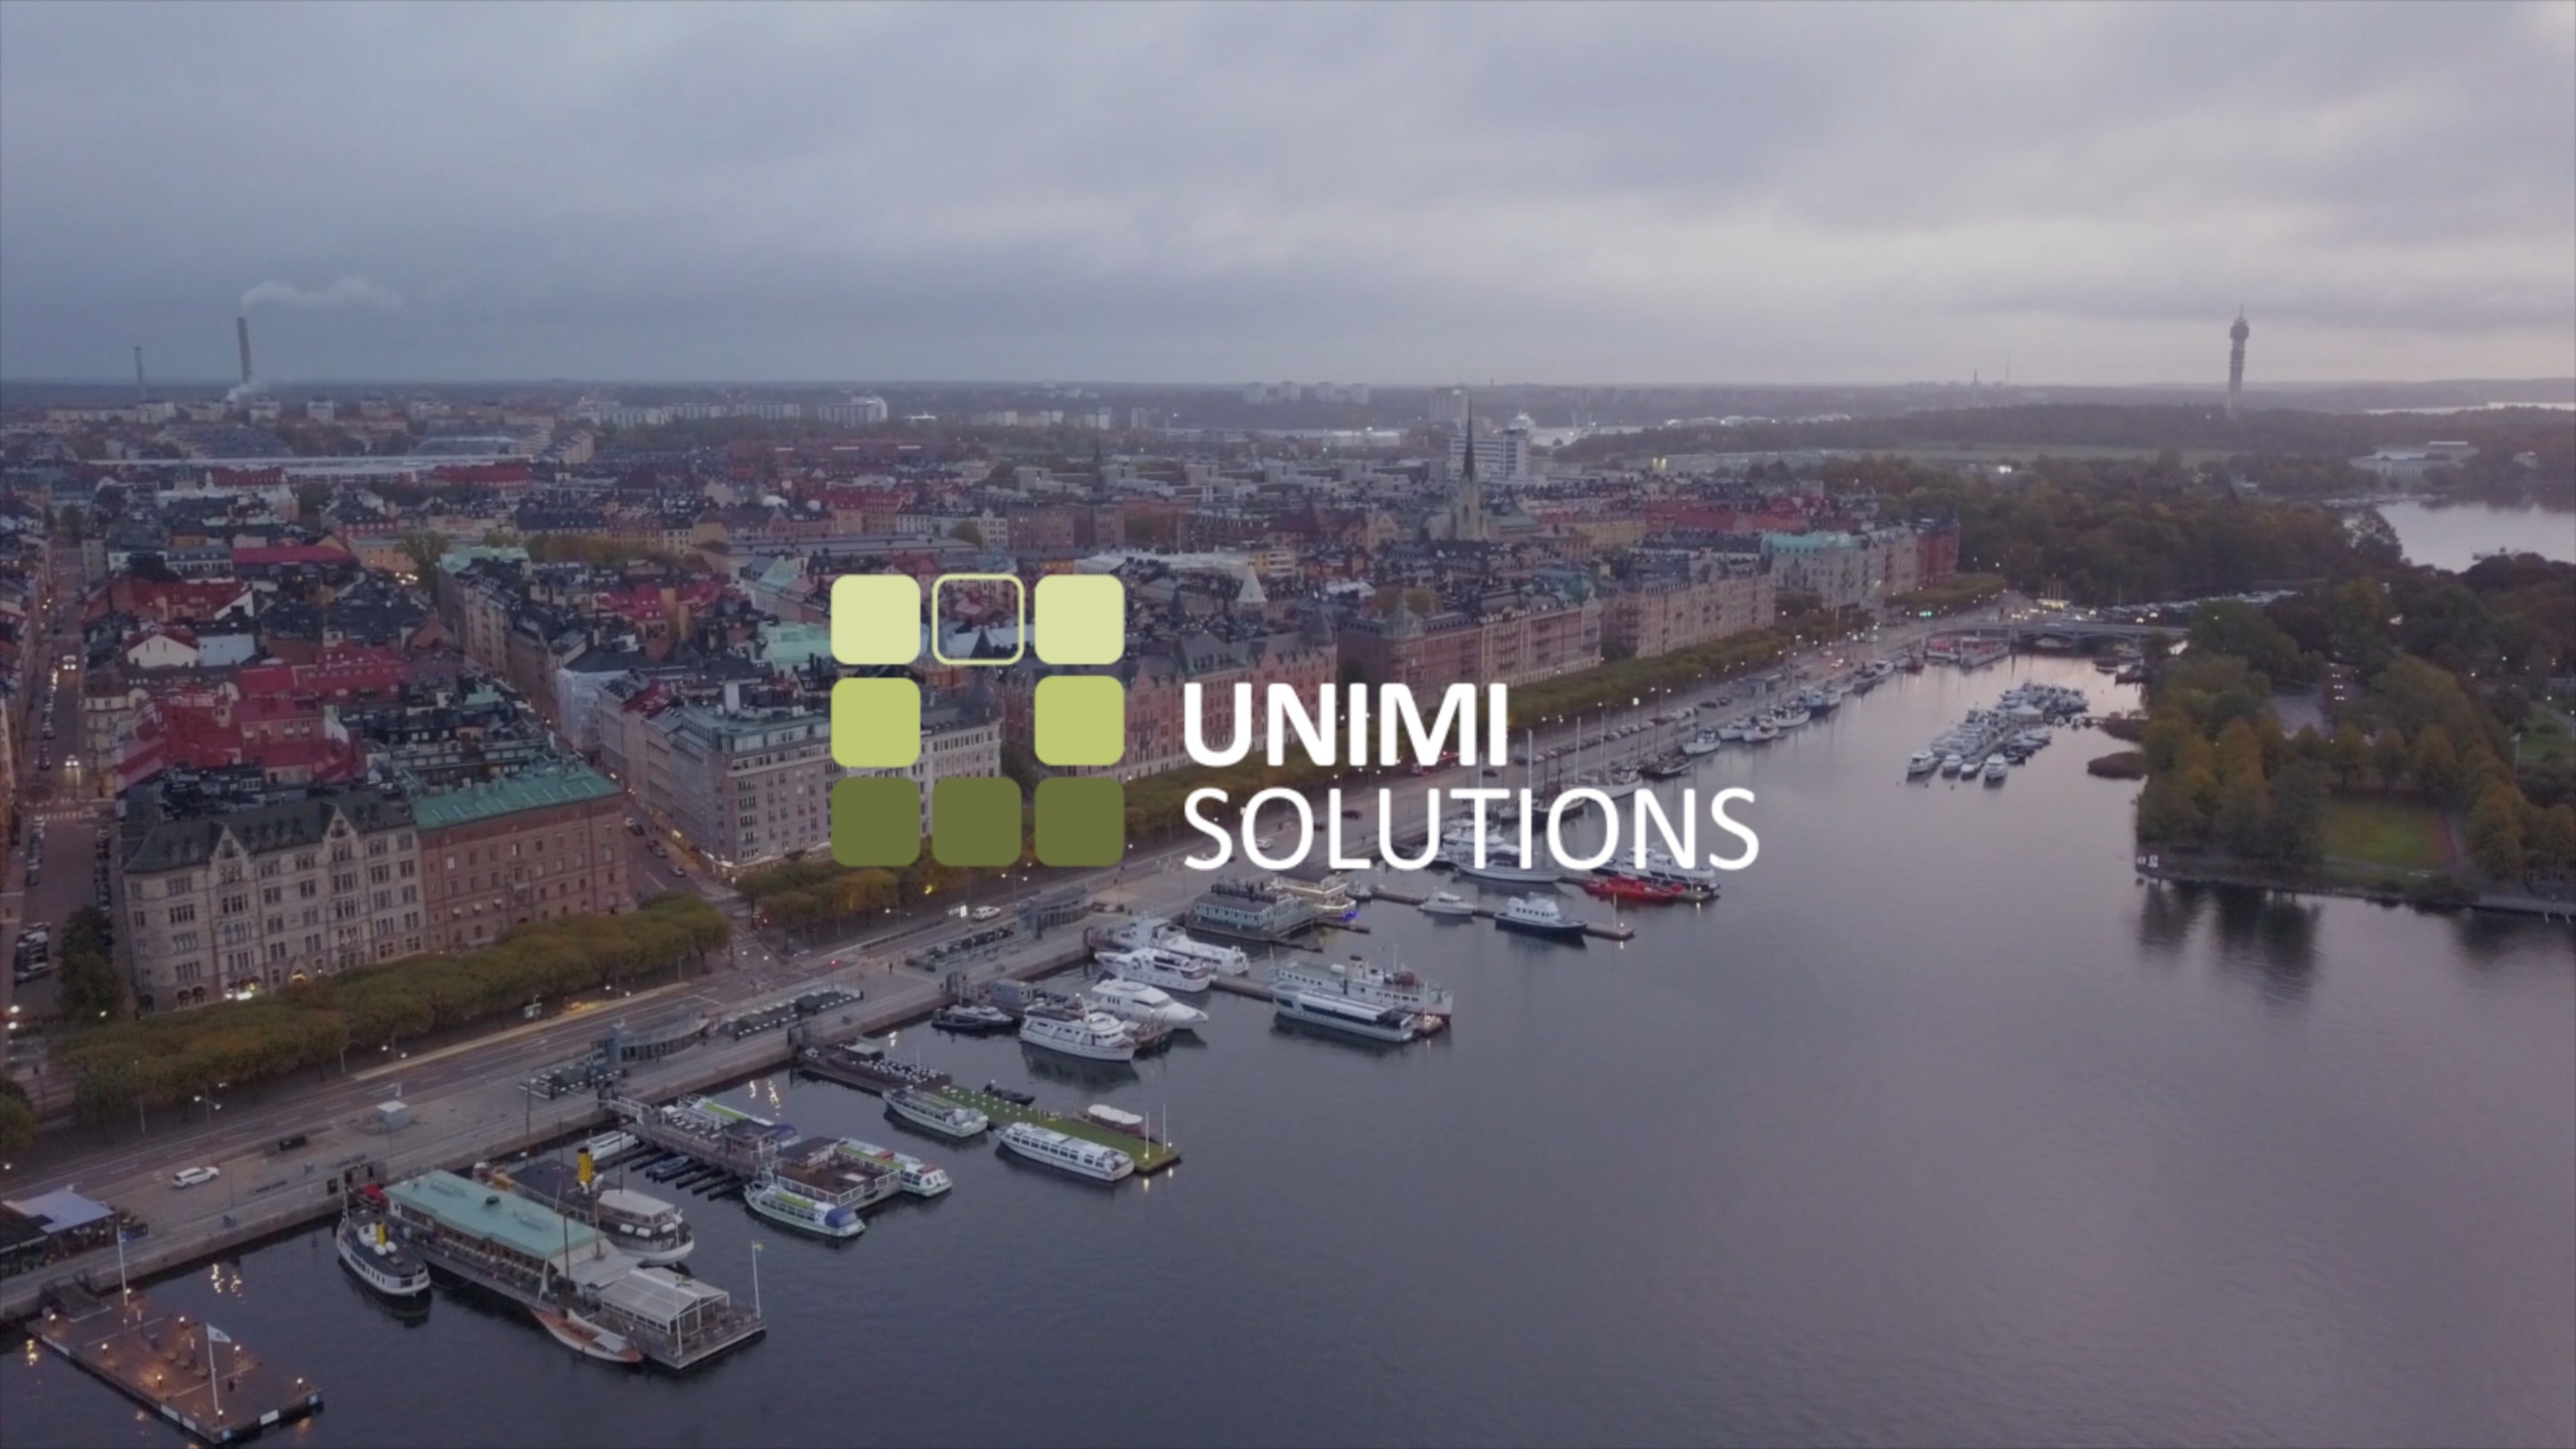 Unimi Solutions Video Production by Storisell